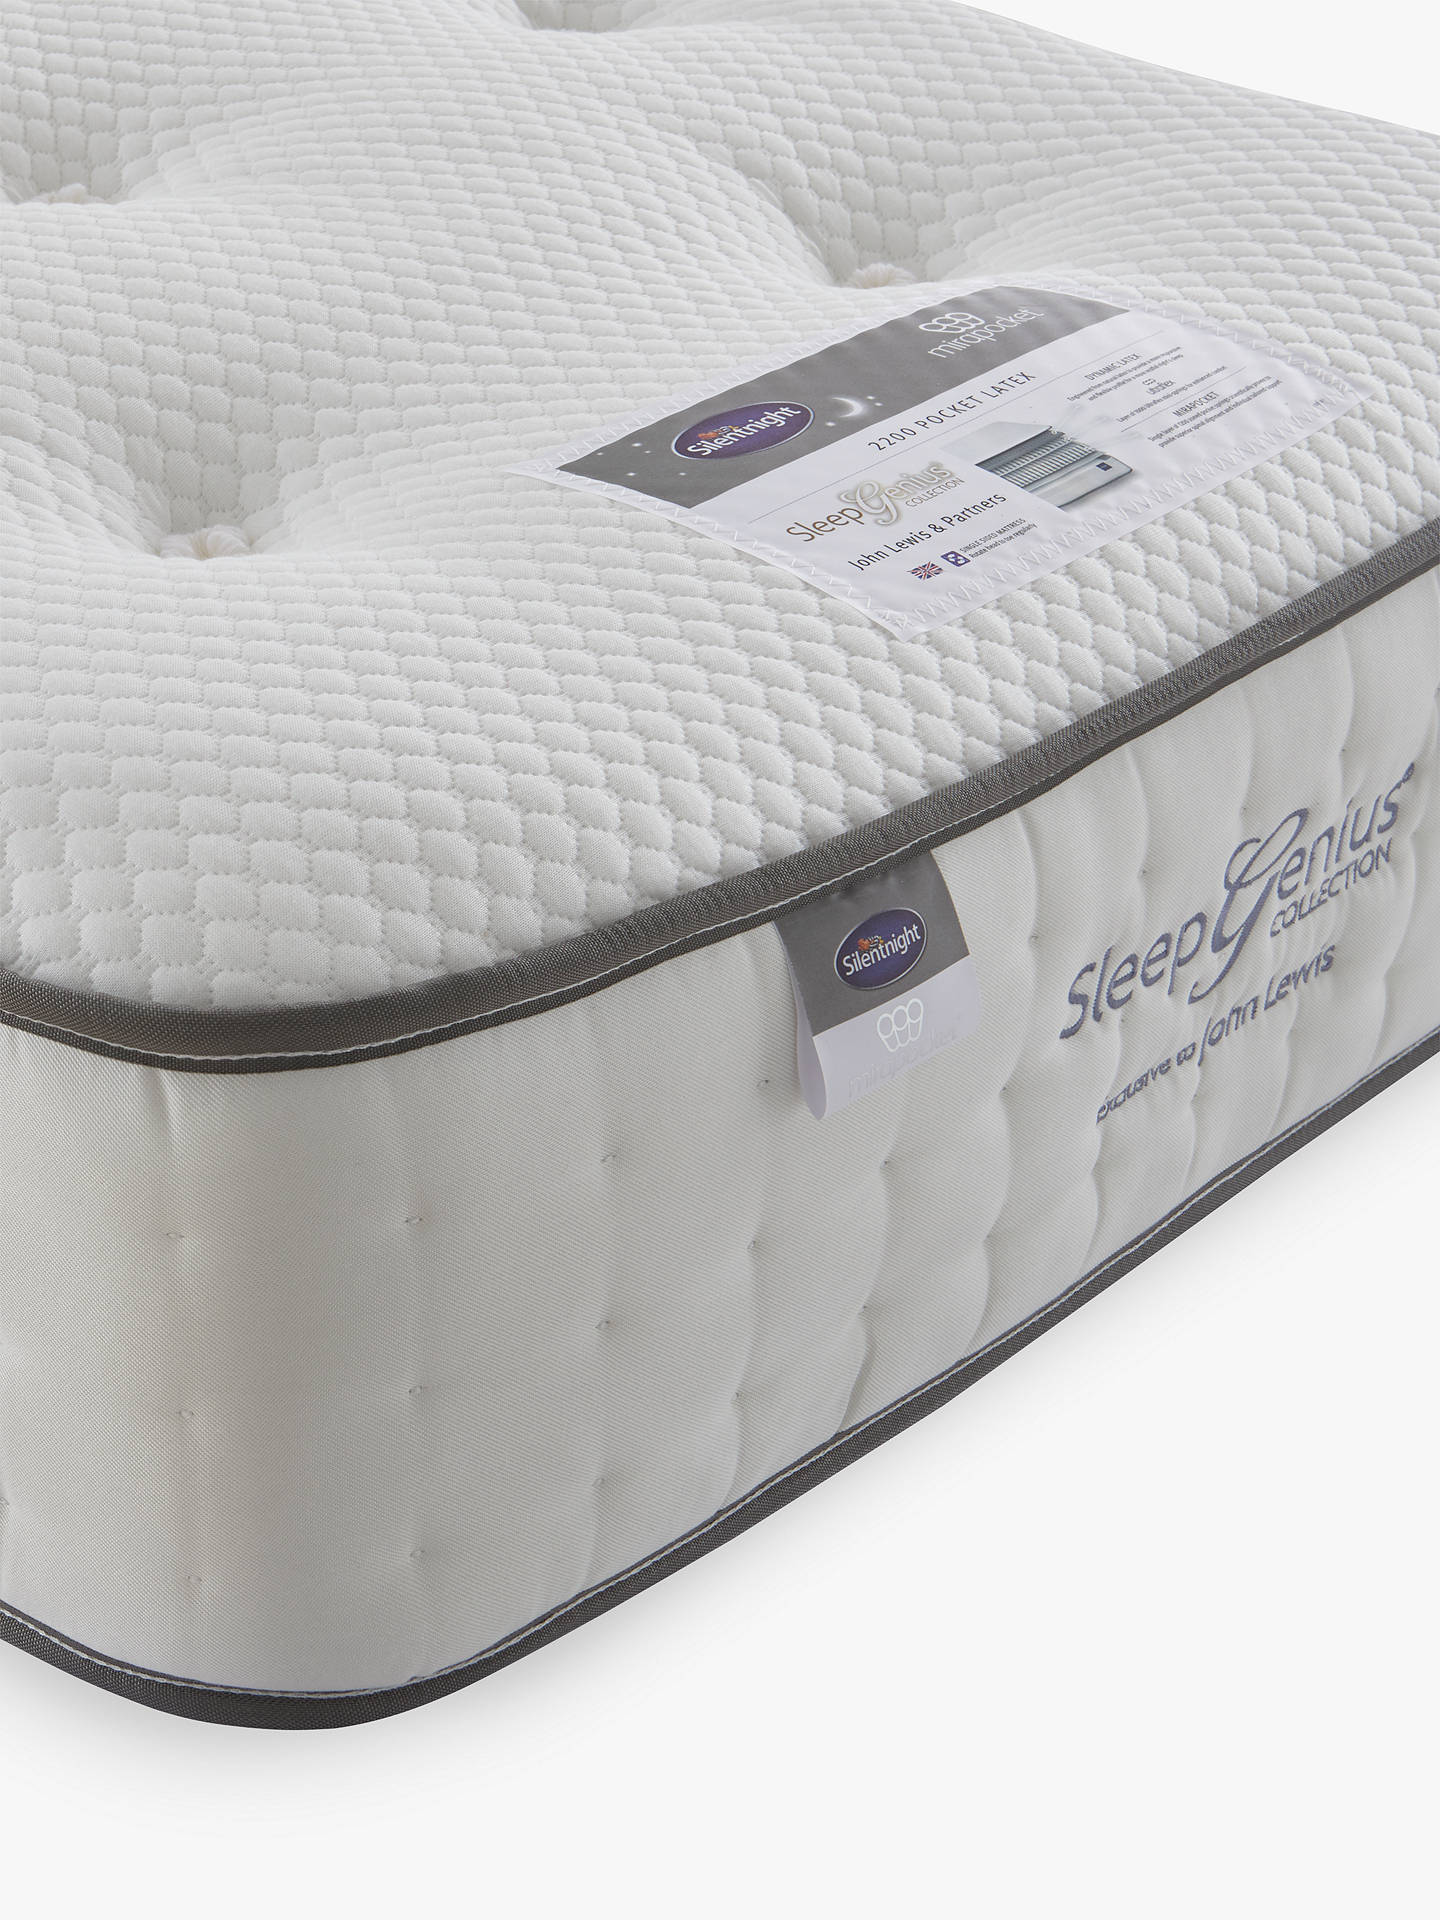 Buy Silentnight Sleep Genius 2200 Pocket Latex Mattress, Medium/Firm Tension, Single Online at johnlewis.com